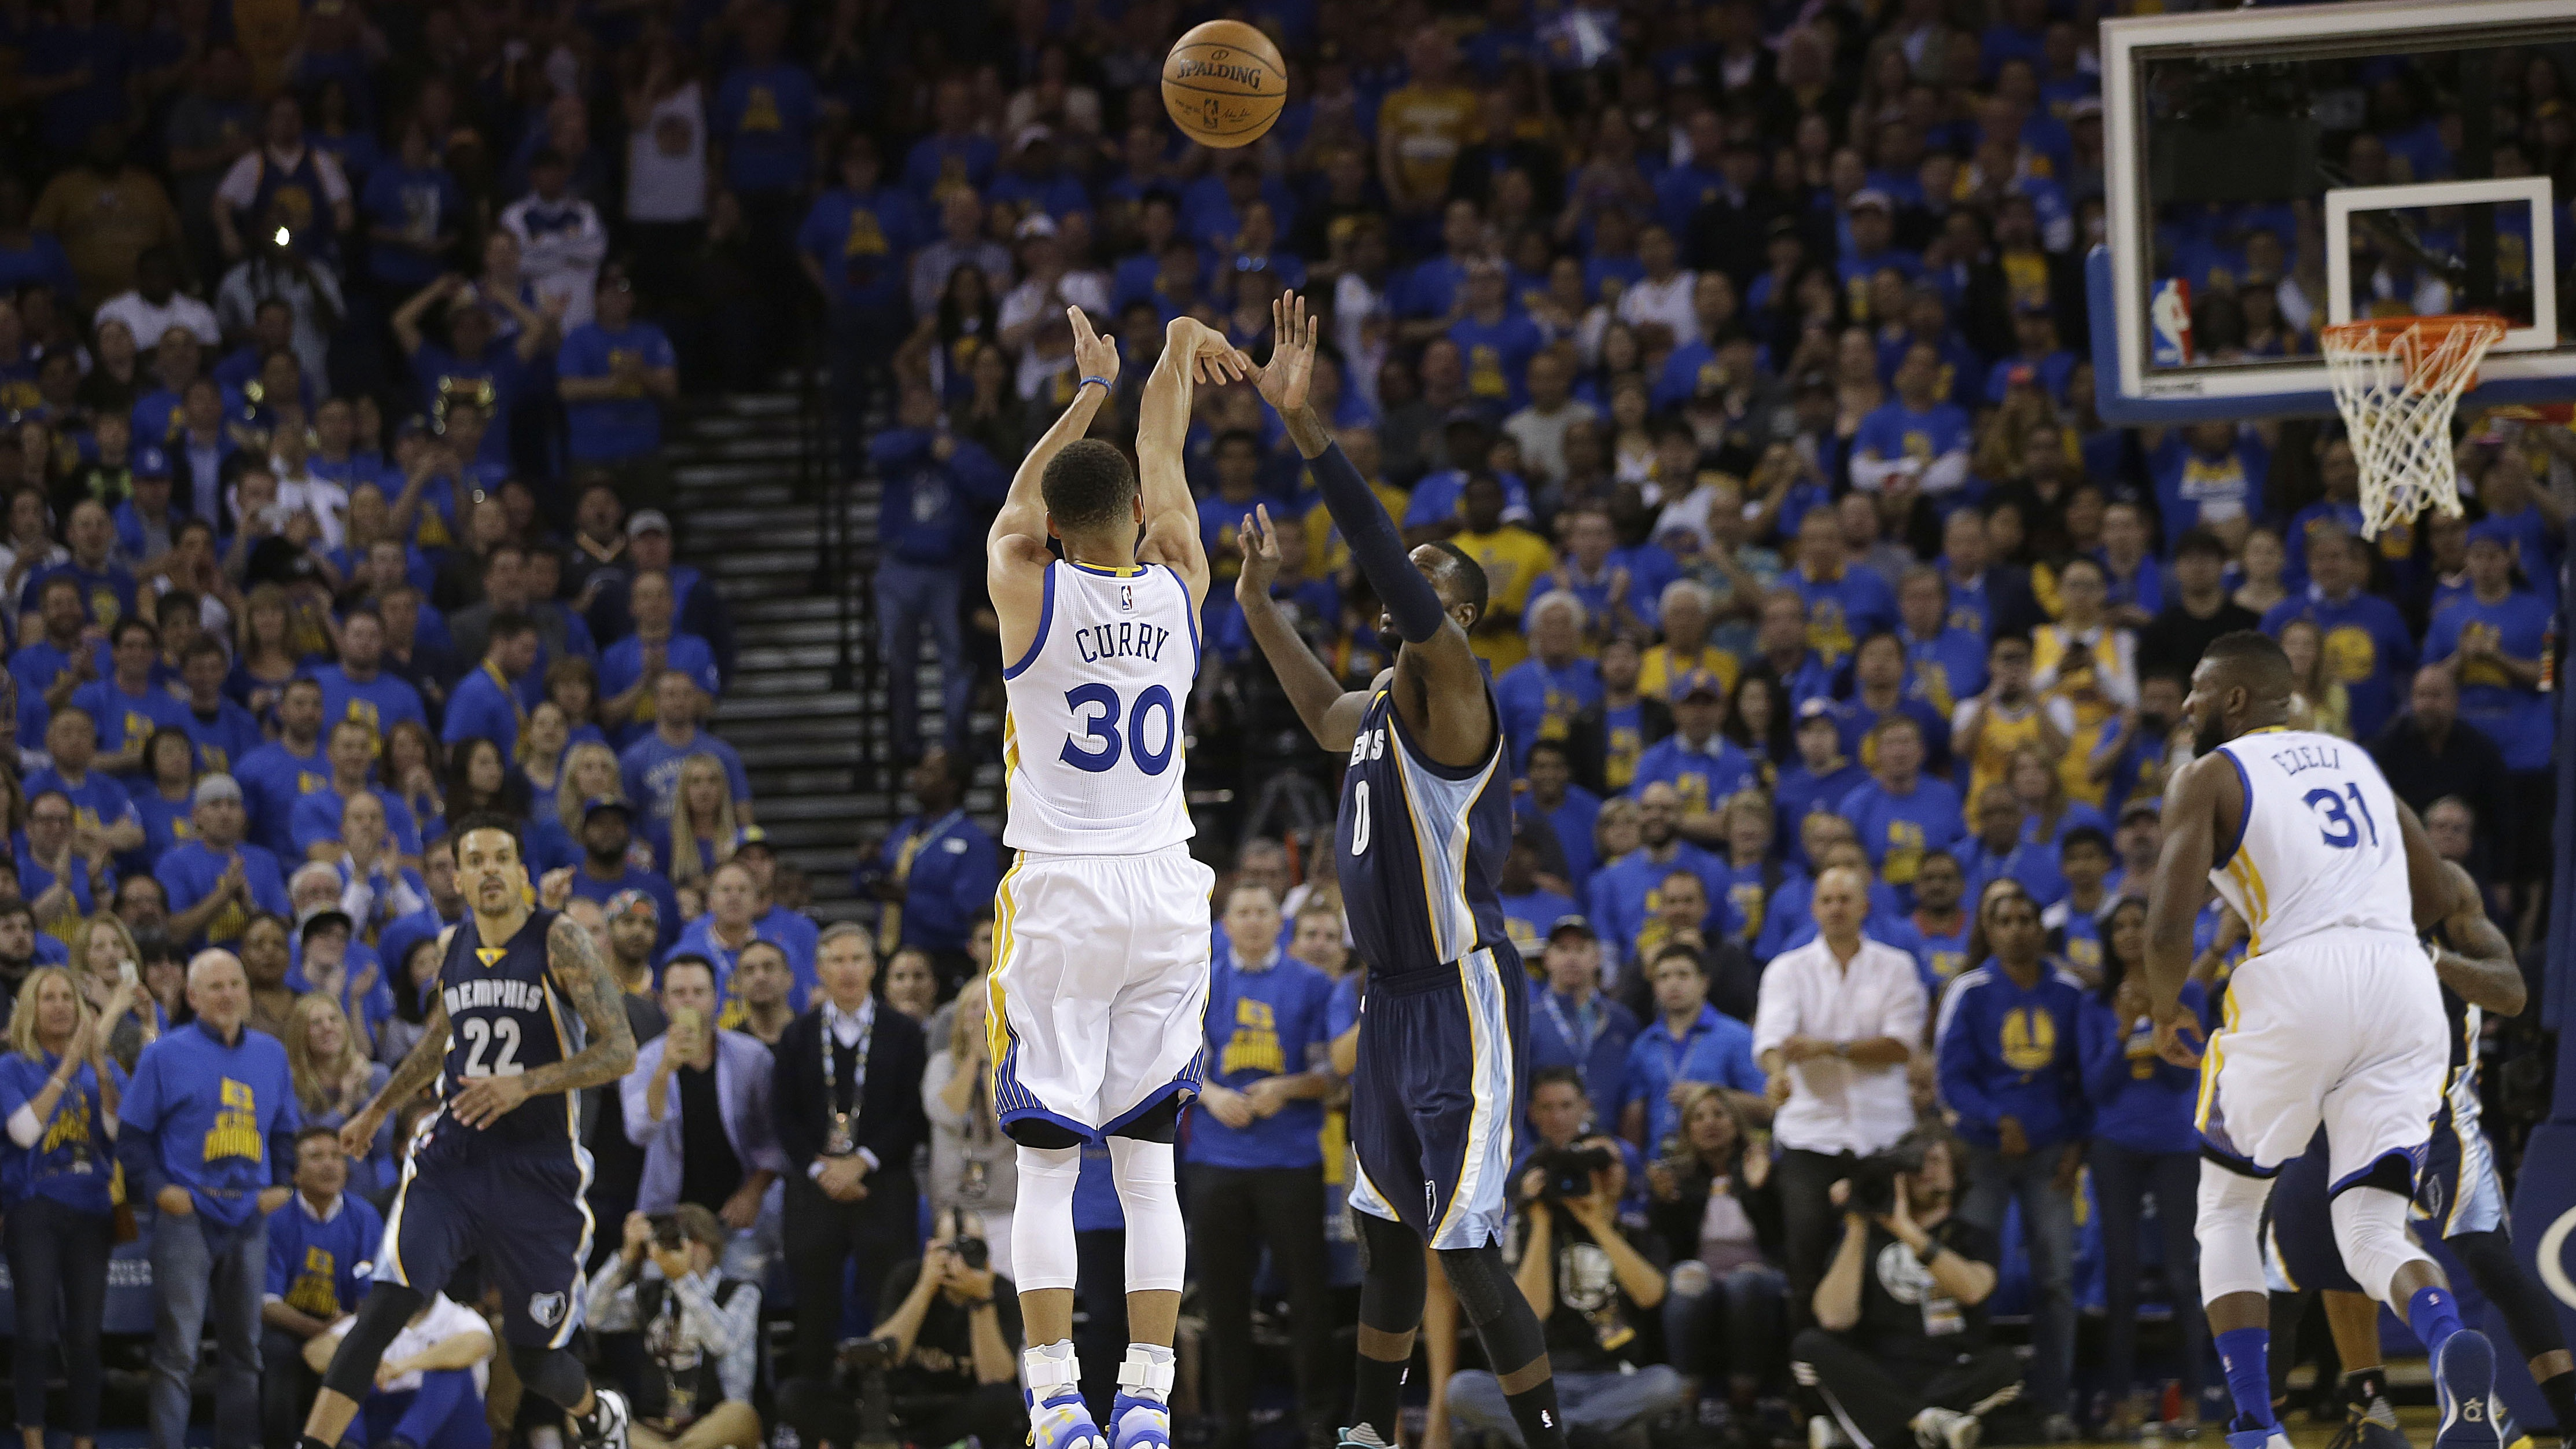 Golden State Warriors guard Stephen Curry (30) shoots a three point basket against Memphis Grizzlies forward JaMychal Green during the first half of an NBA basketball game in Oakland, Calif., Wednesday, April 13, 2016.